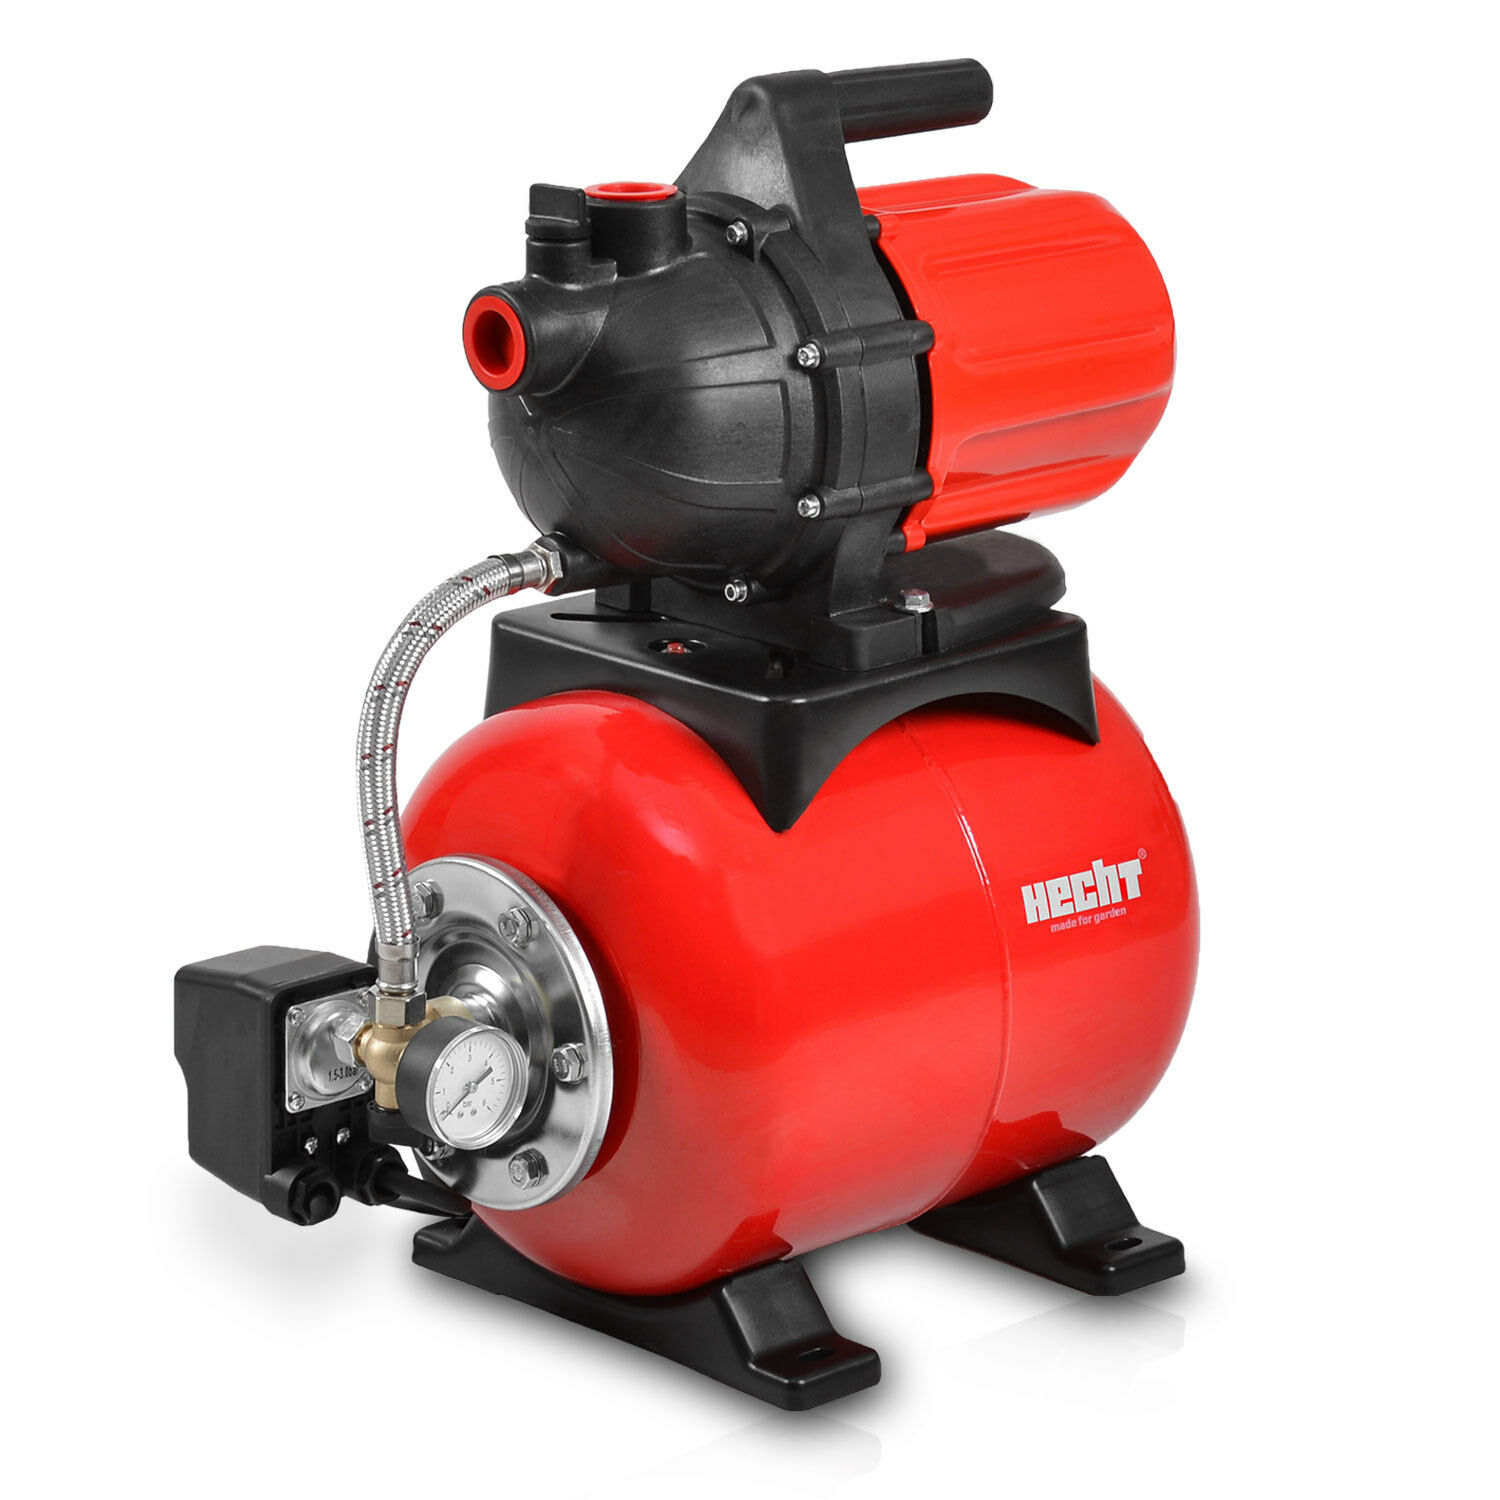 hecht 3800 hauswasserwerk wasserpumpe motorpumpe. Black Bedroom Furniture Sets. Home Design Ideas